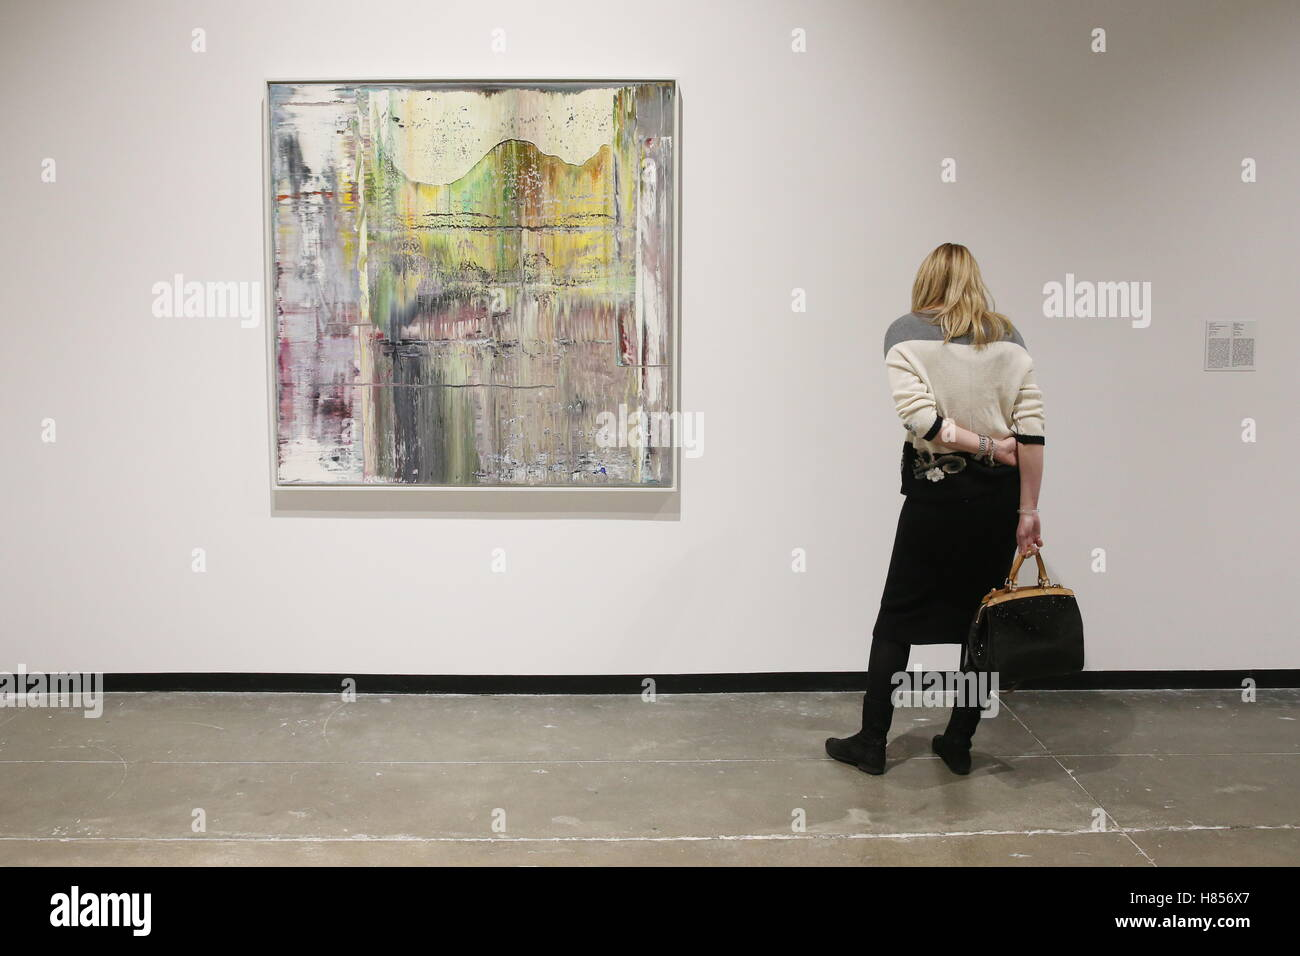 Moscow, Russia. 10th Nov, 2016. A woman seen by Haggadah at an exhibition of paintings by German visual artist Gerhard - Stock Image